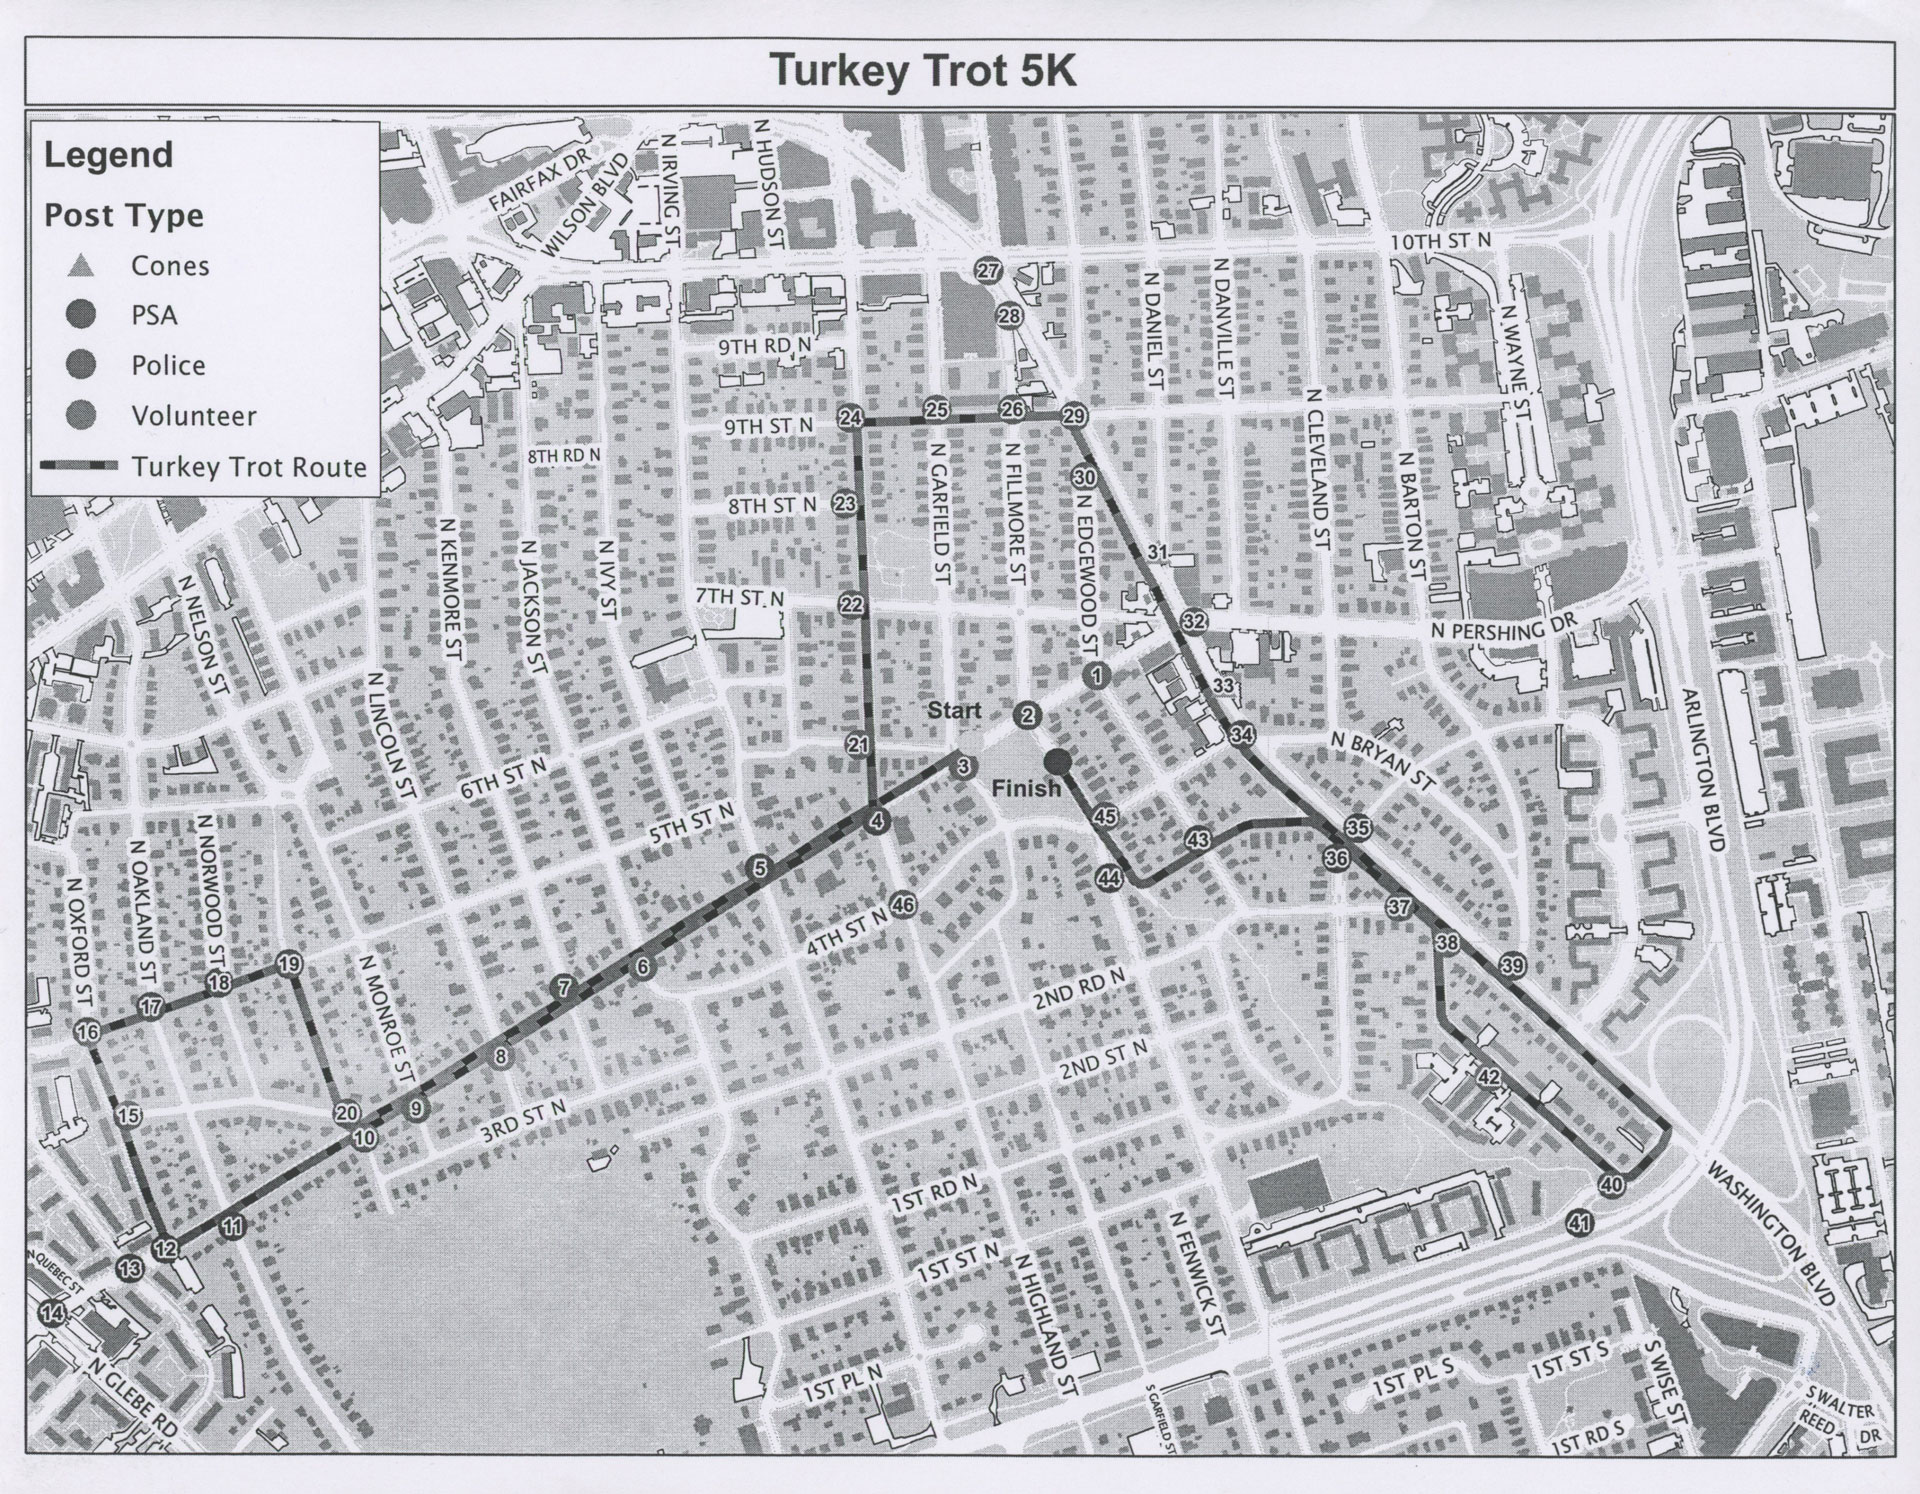 arlington-va-turkey-trot-race-course-map